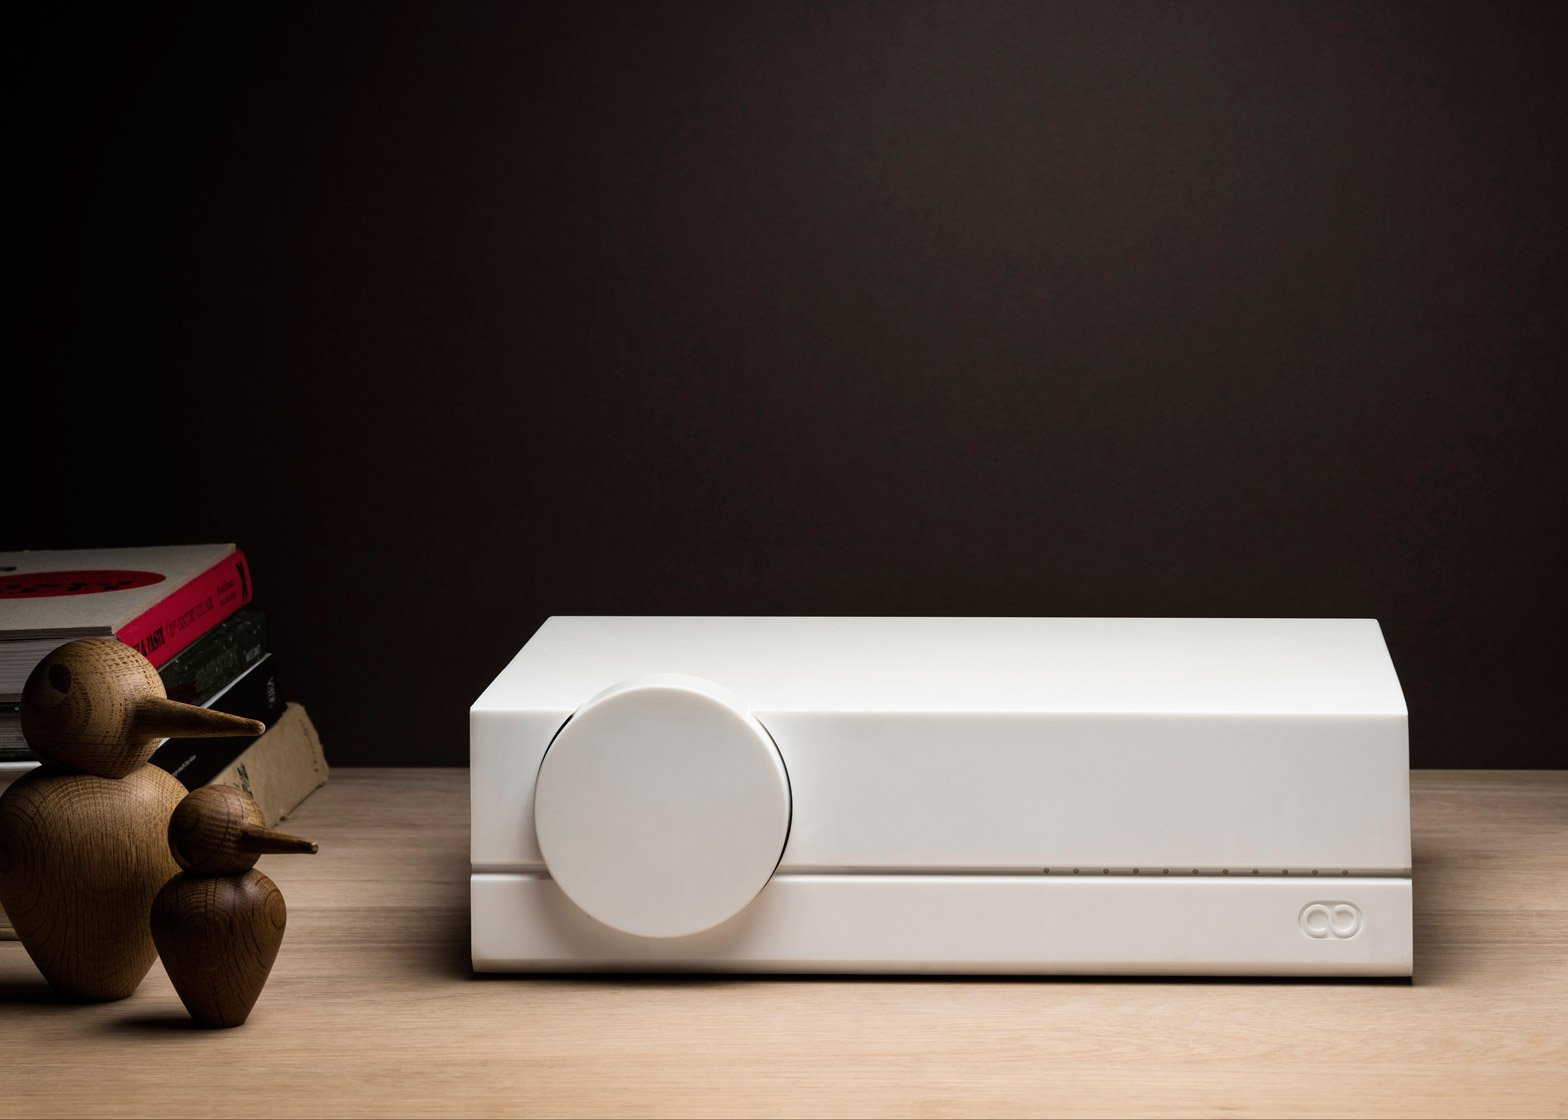 Audioberry Junior amplifier designed by Paul Crofts Studio